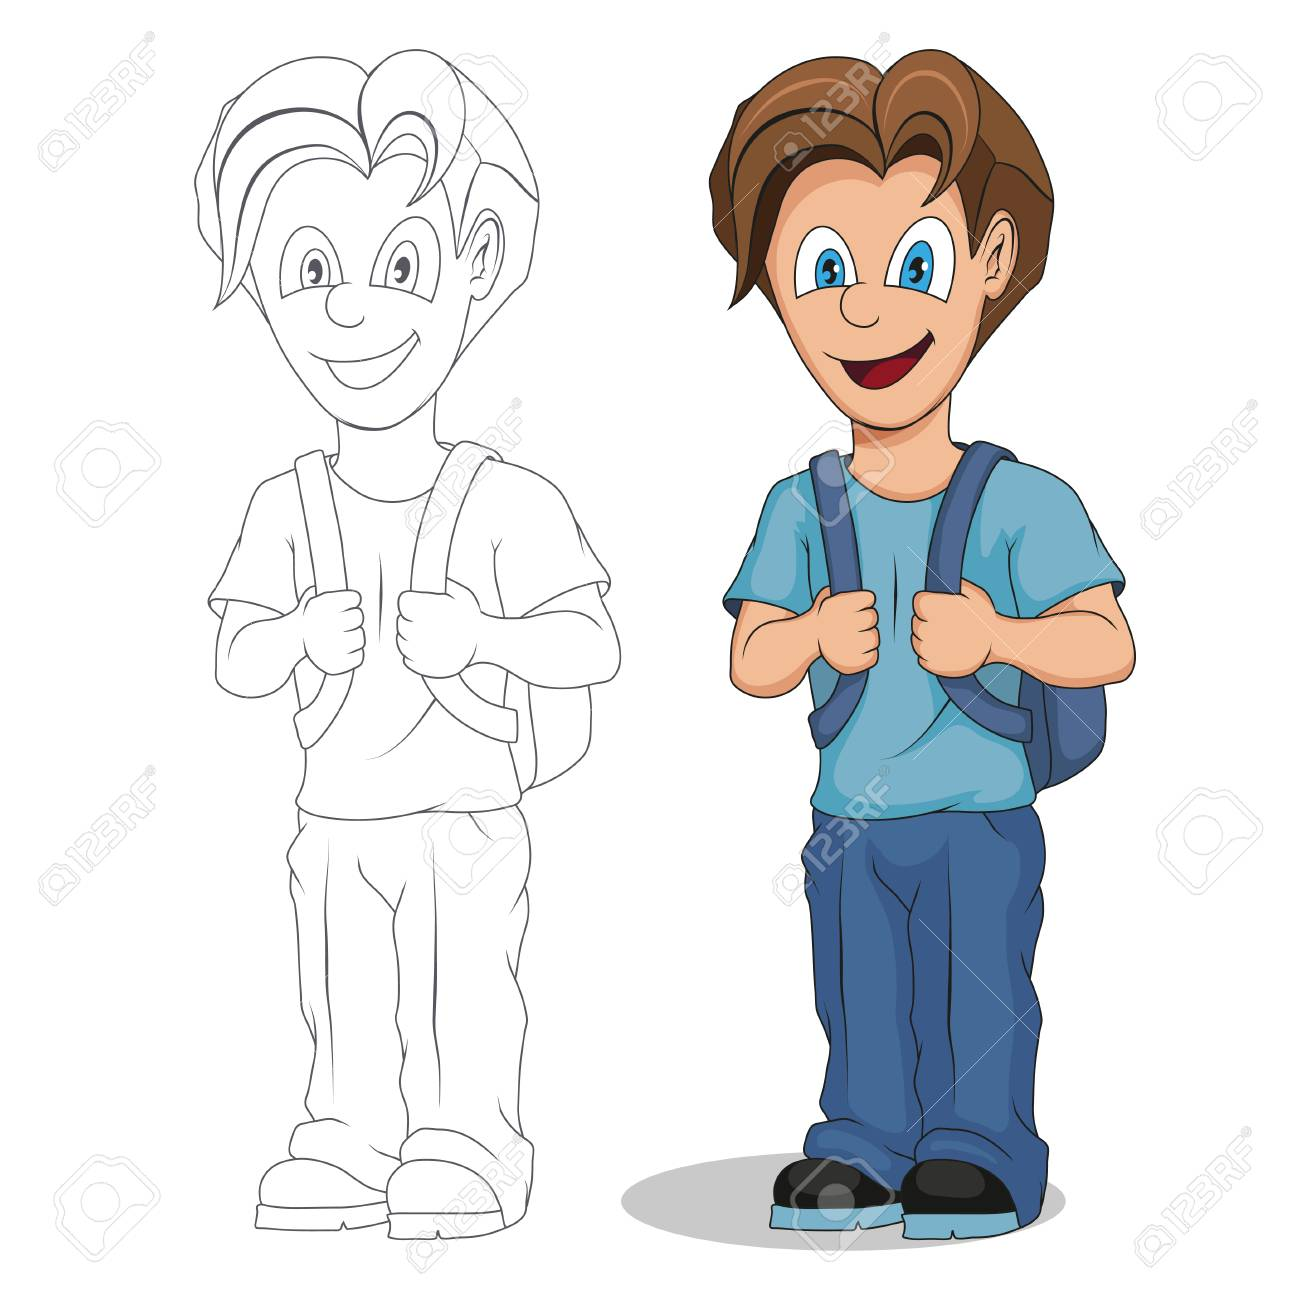 Back To School Cartoon School Boy Hand Drawing Of A Student